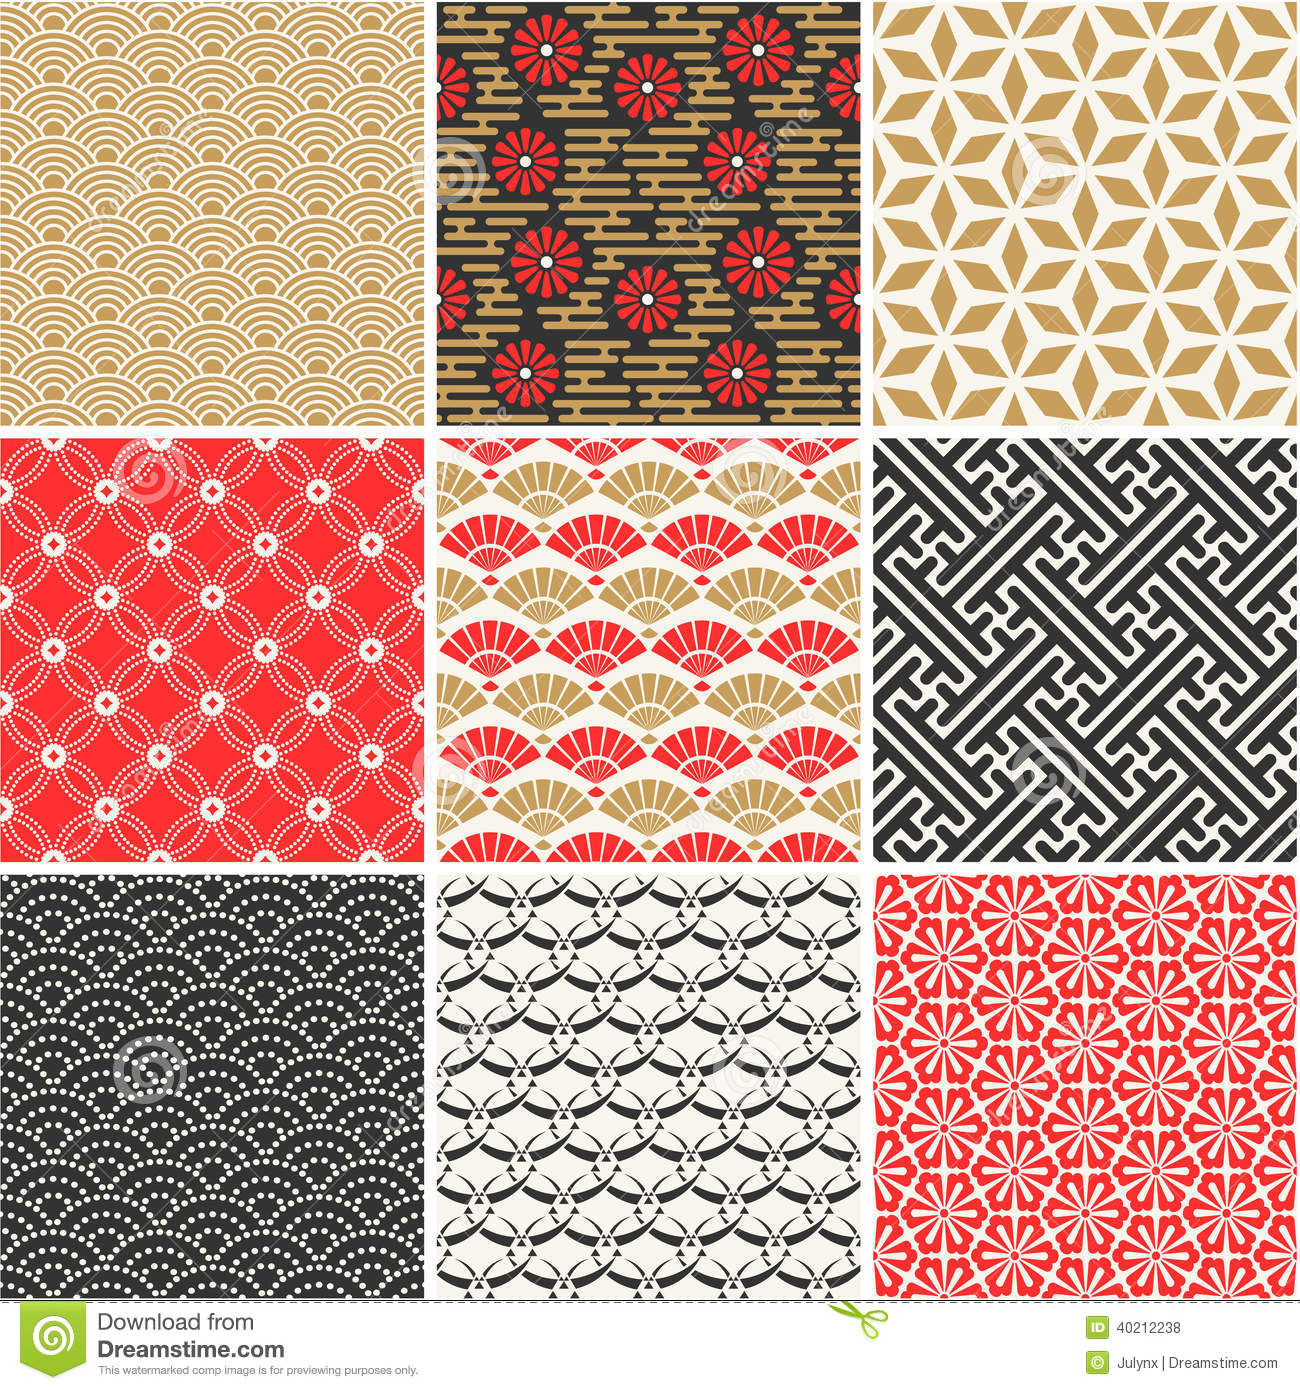 Japanese Vector Seamless Patterns Set Stock Vector - Image: 40212238